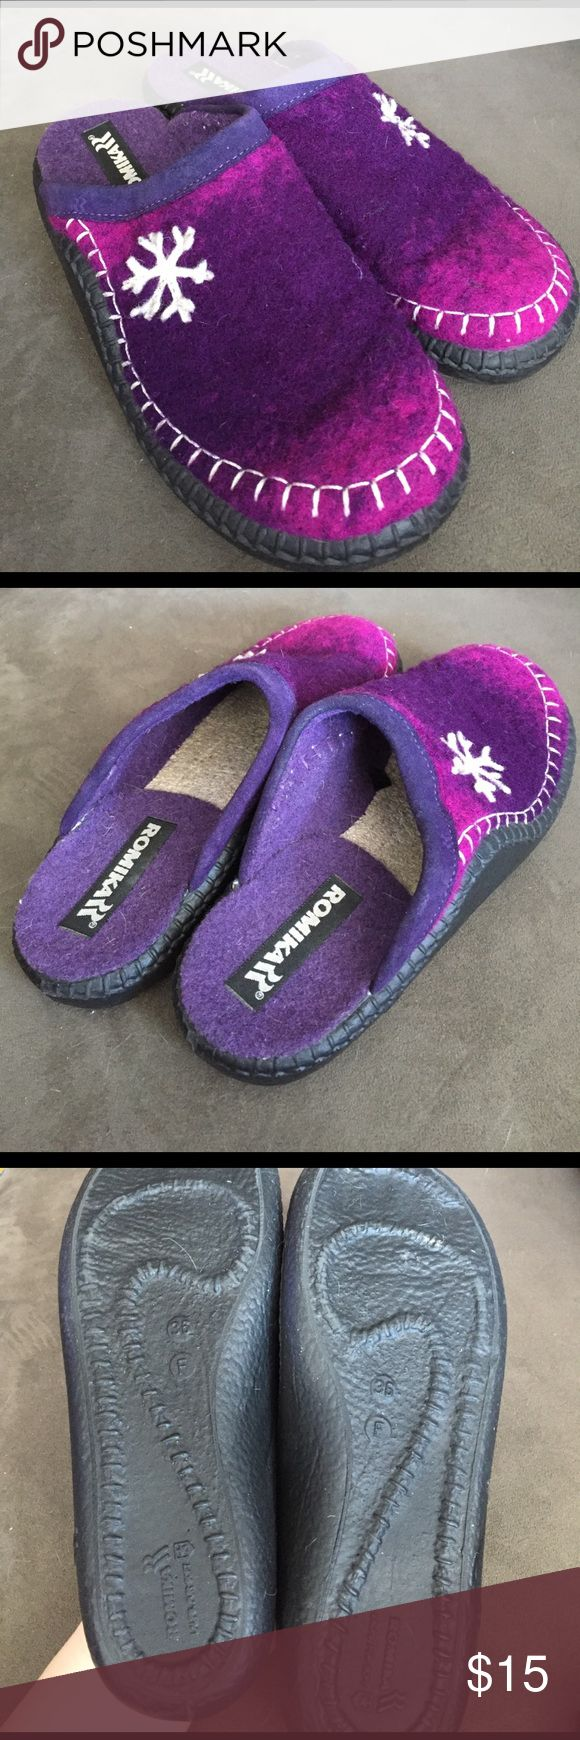 Romika purple winter slipper shoes EUC - warm wool - durable shoes romika Shoes Mules & Clogs